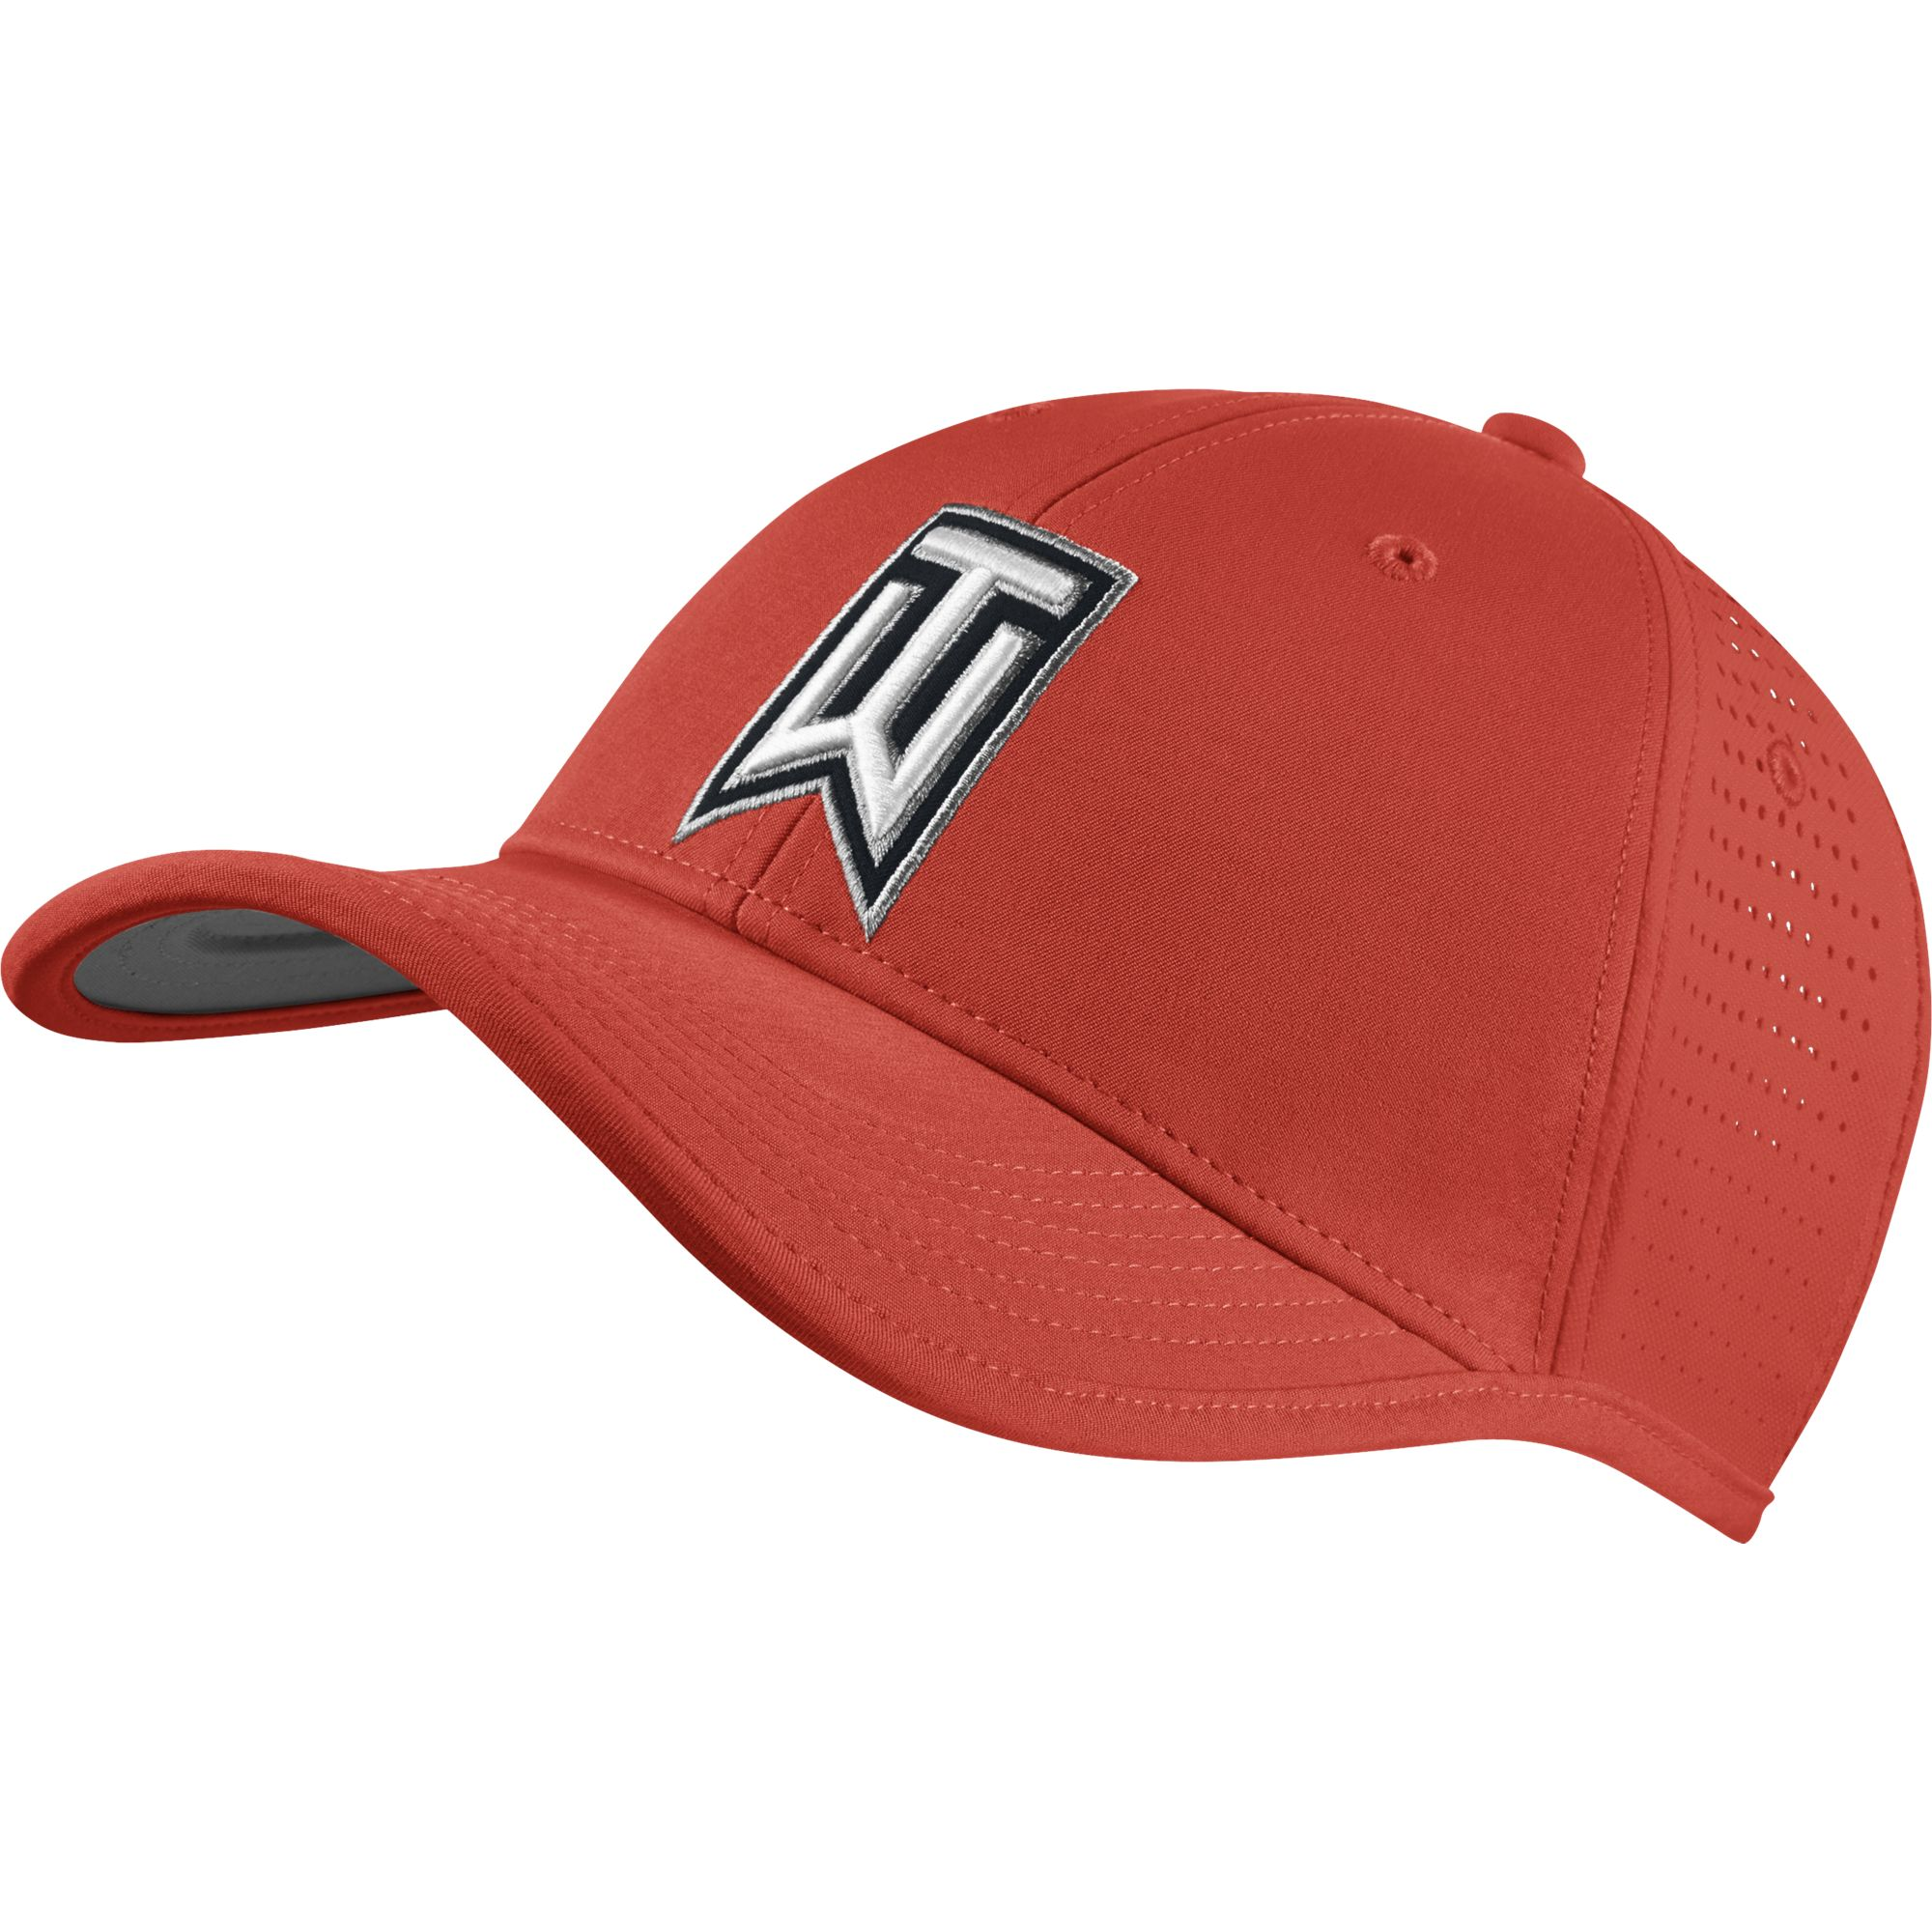 Nike Unisex Tiger Woods Ultralight Tour Ajustable Cap - Product Oasis c939e0ca4f6a